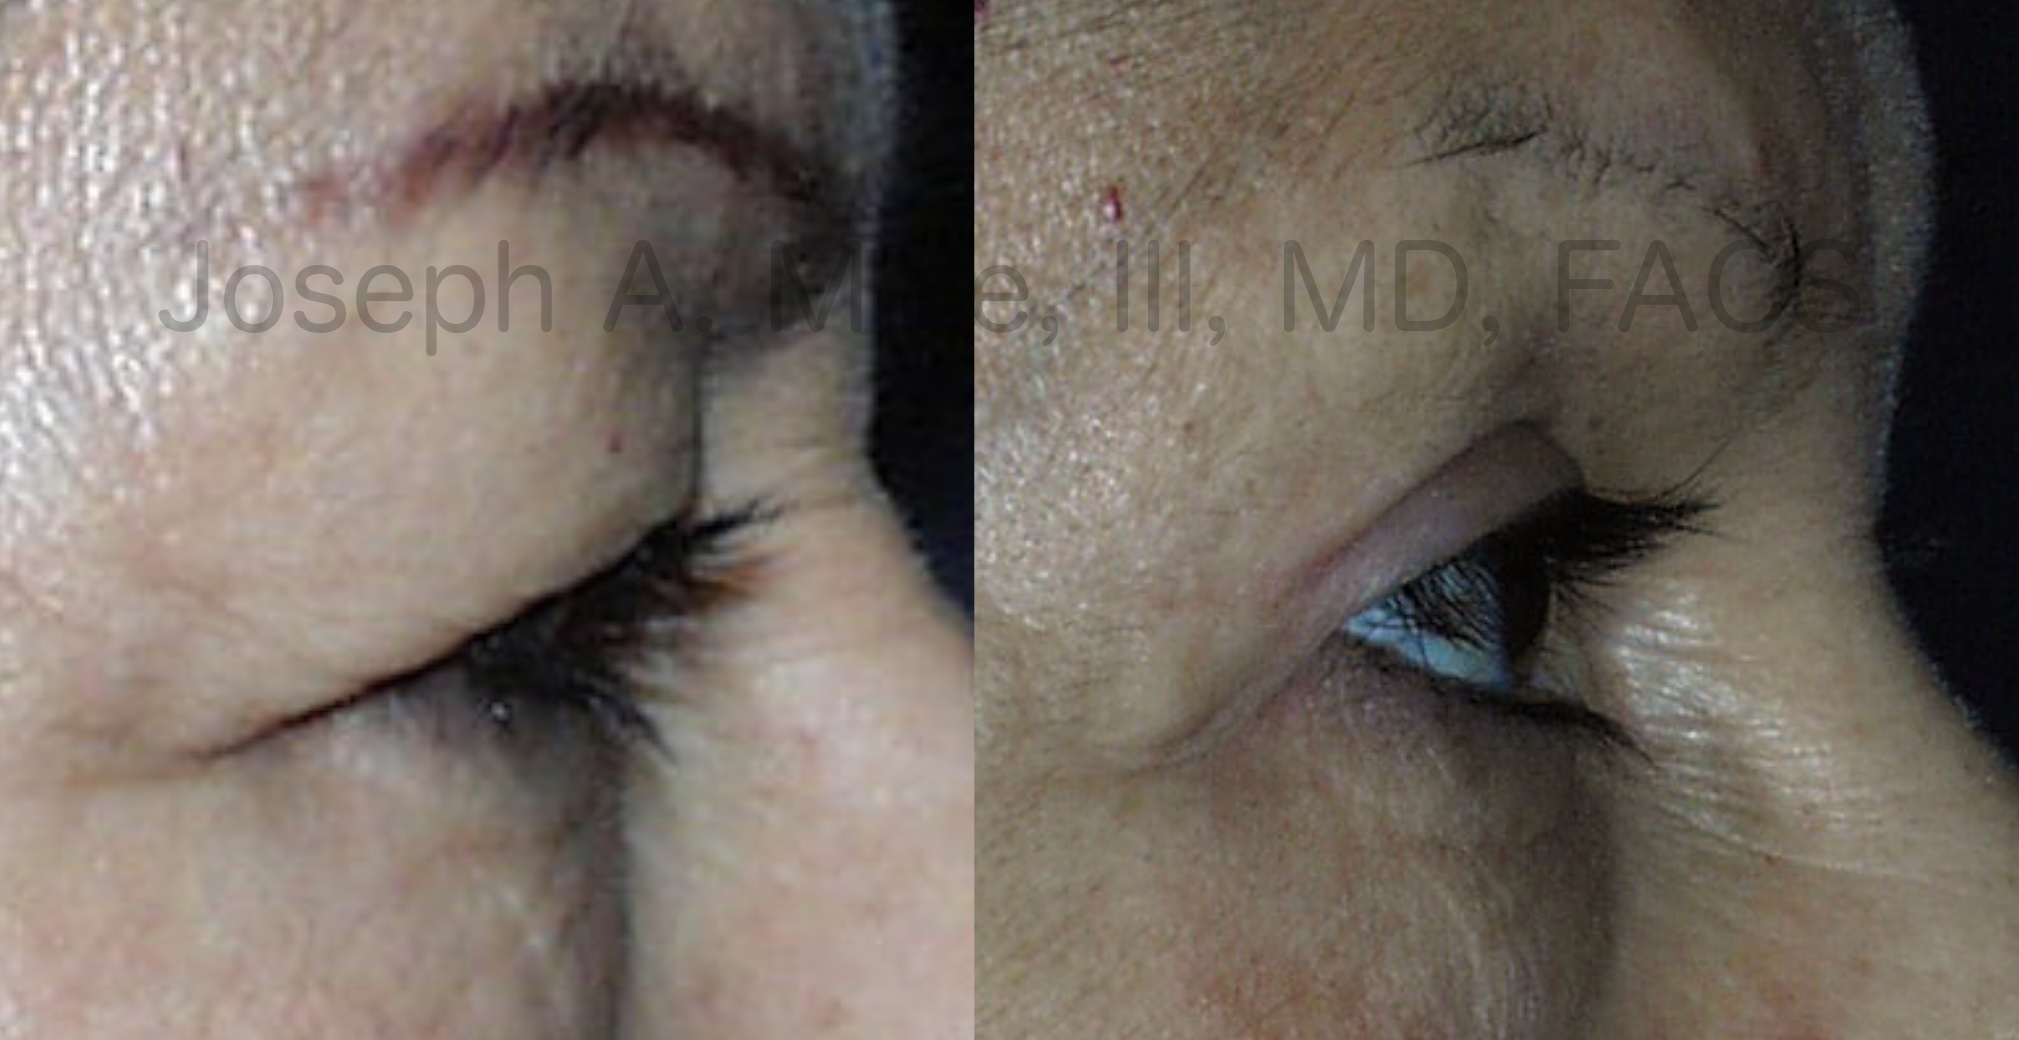 Upper Eyelid Lift before and after pictures (Blepharoplasty)